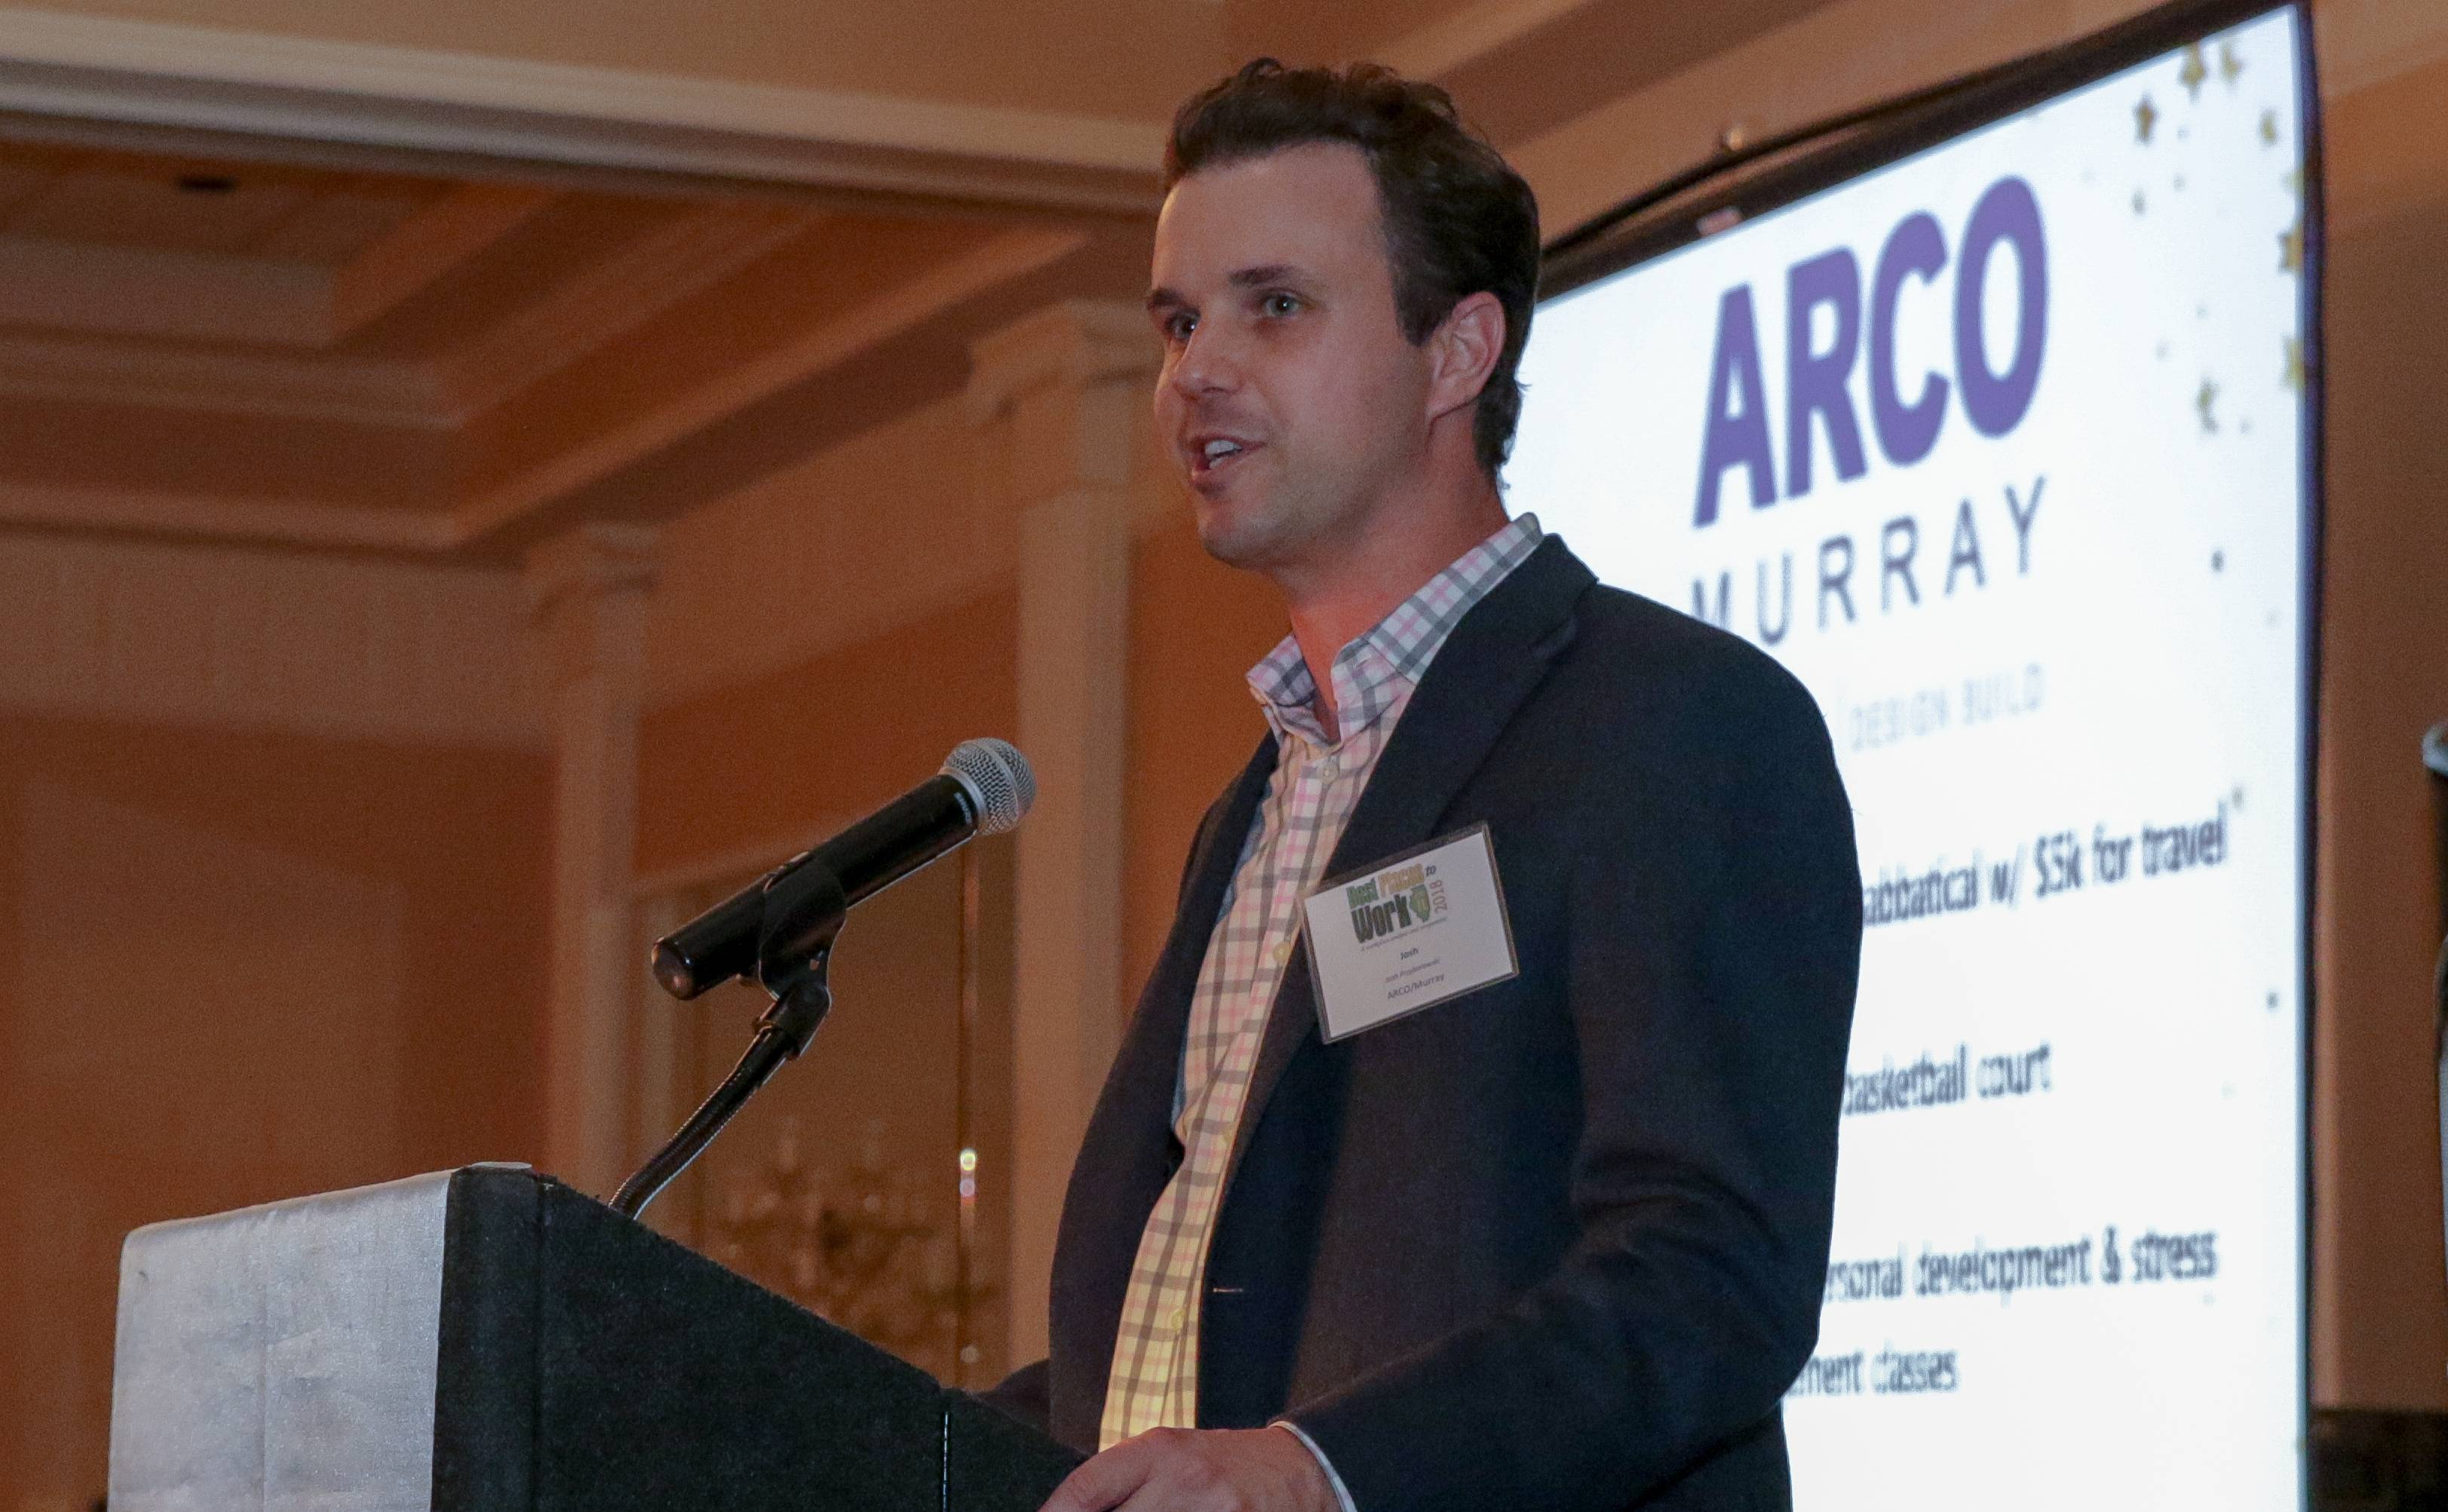 Josh Przyborowski, director of business development with Downers Grove-based ARCO/Murray National Construction Company, accepts the first-place prize for a medium-size company at the Business Ledger Best Places to Work Awards in Glen Ellyn on Thursday.